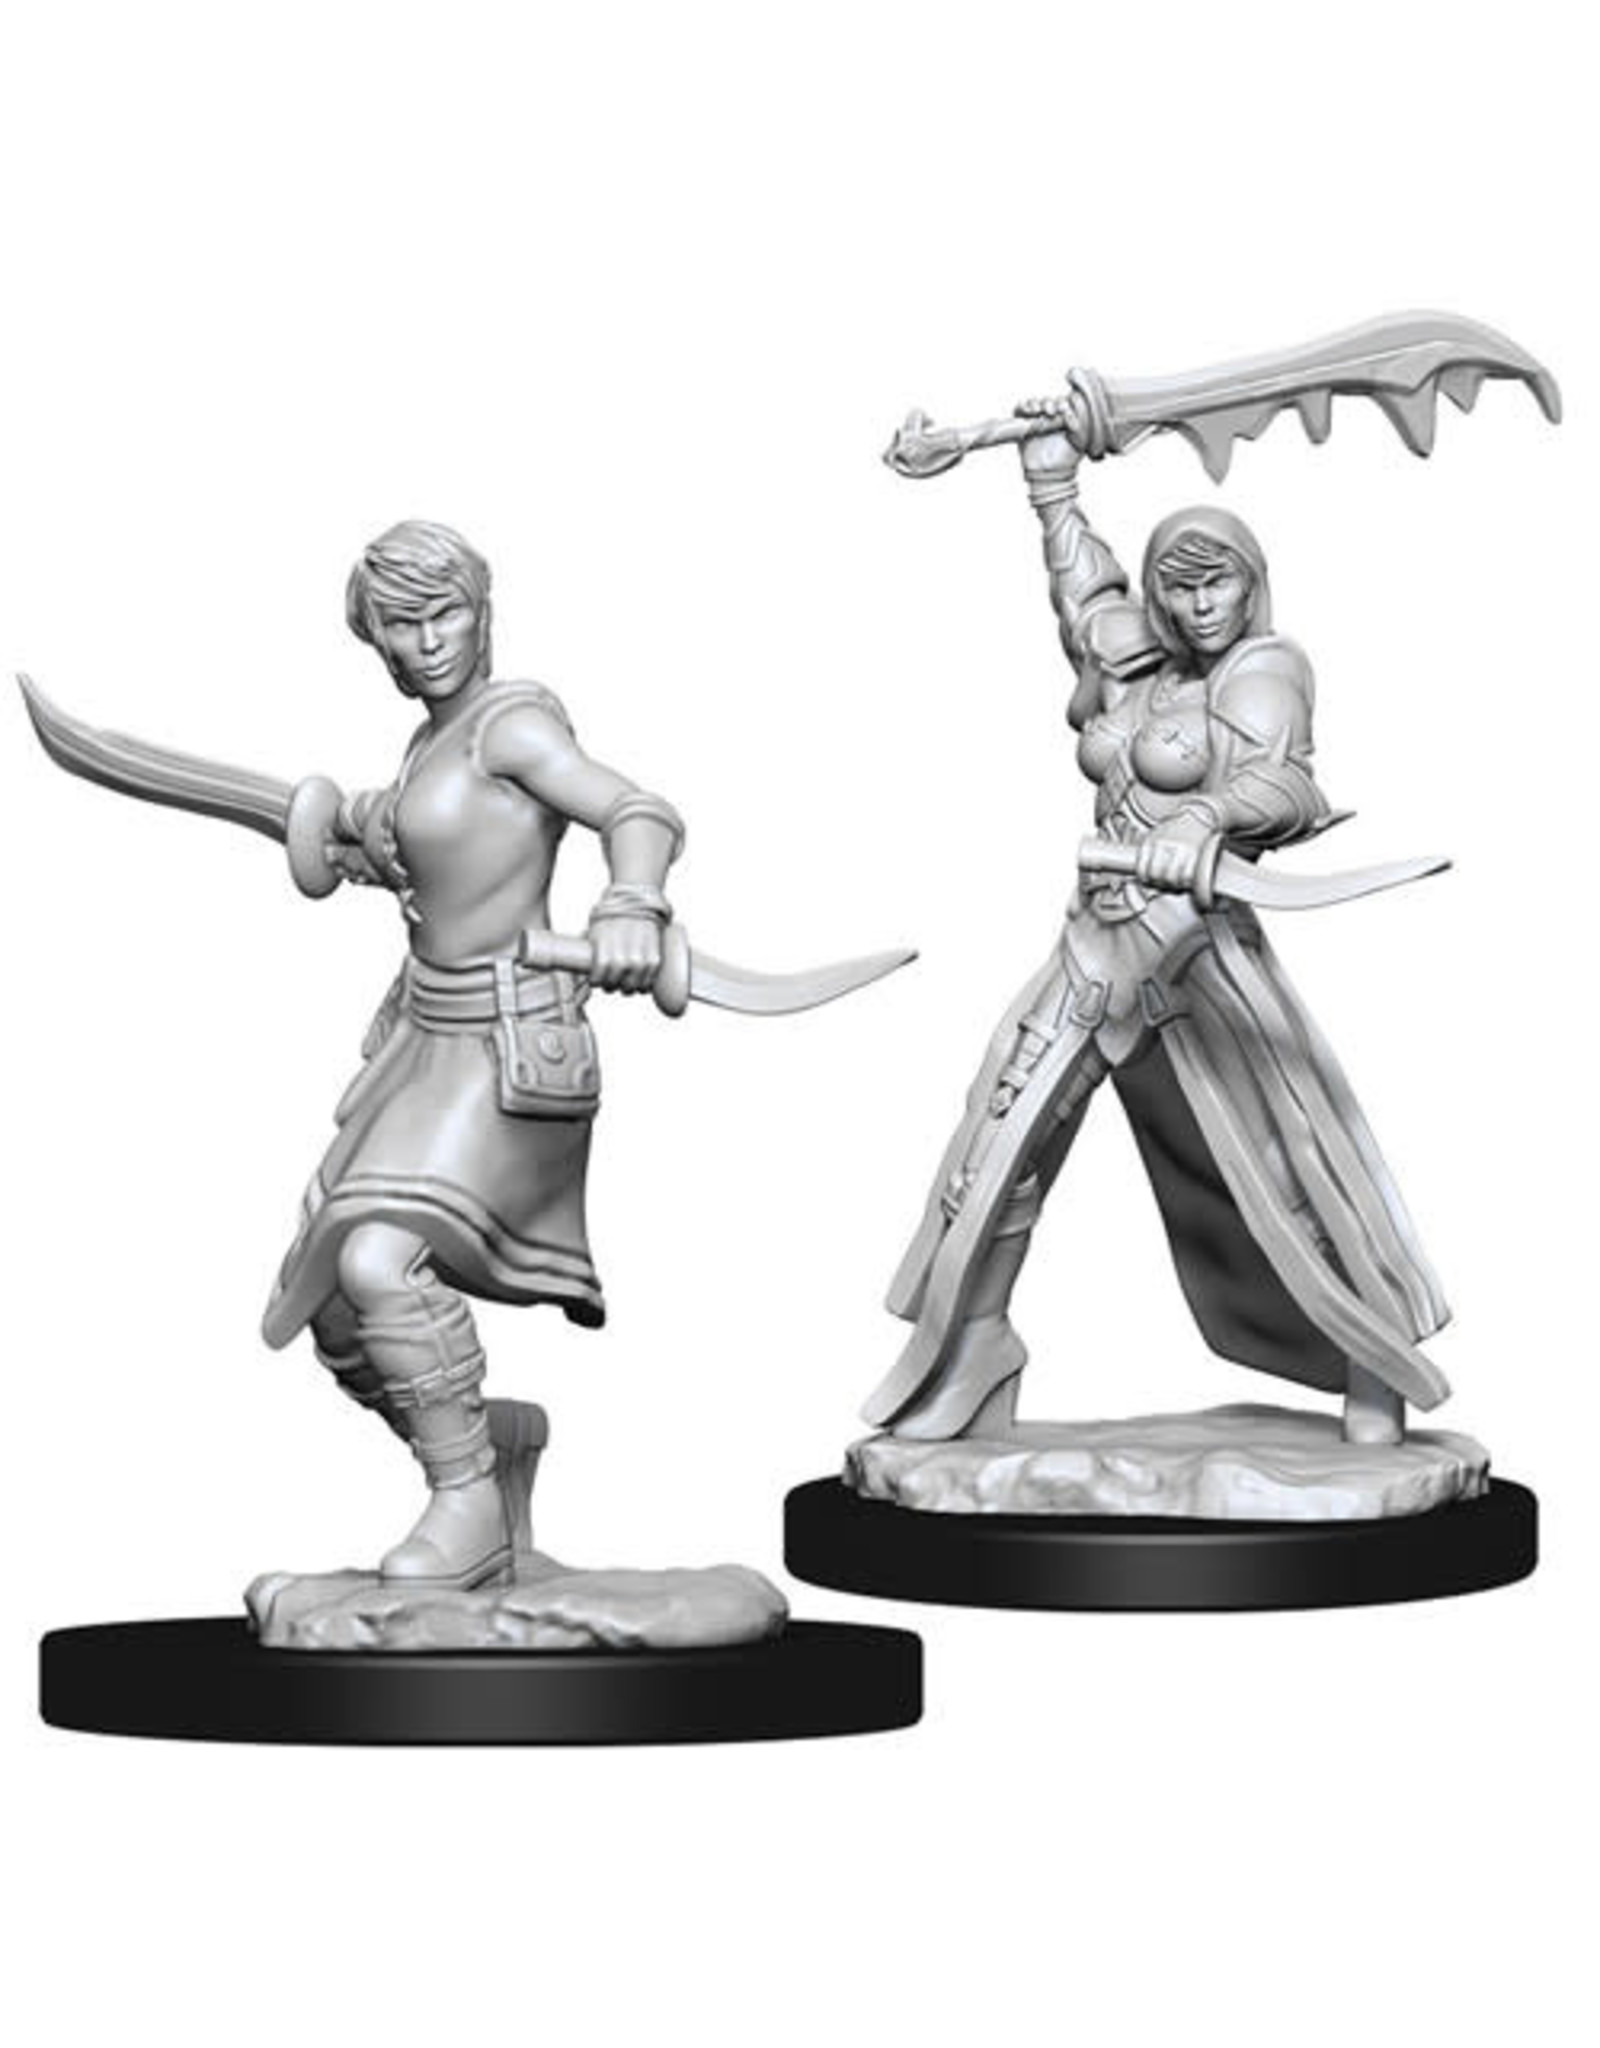 D&D Unpainted Minis: Human Female Rogue (Wave 10)